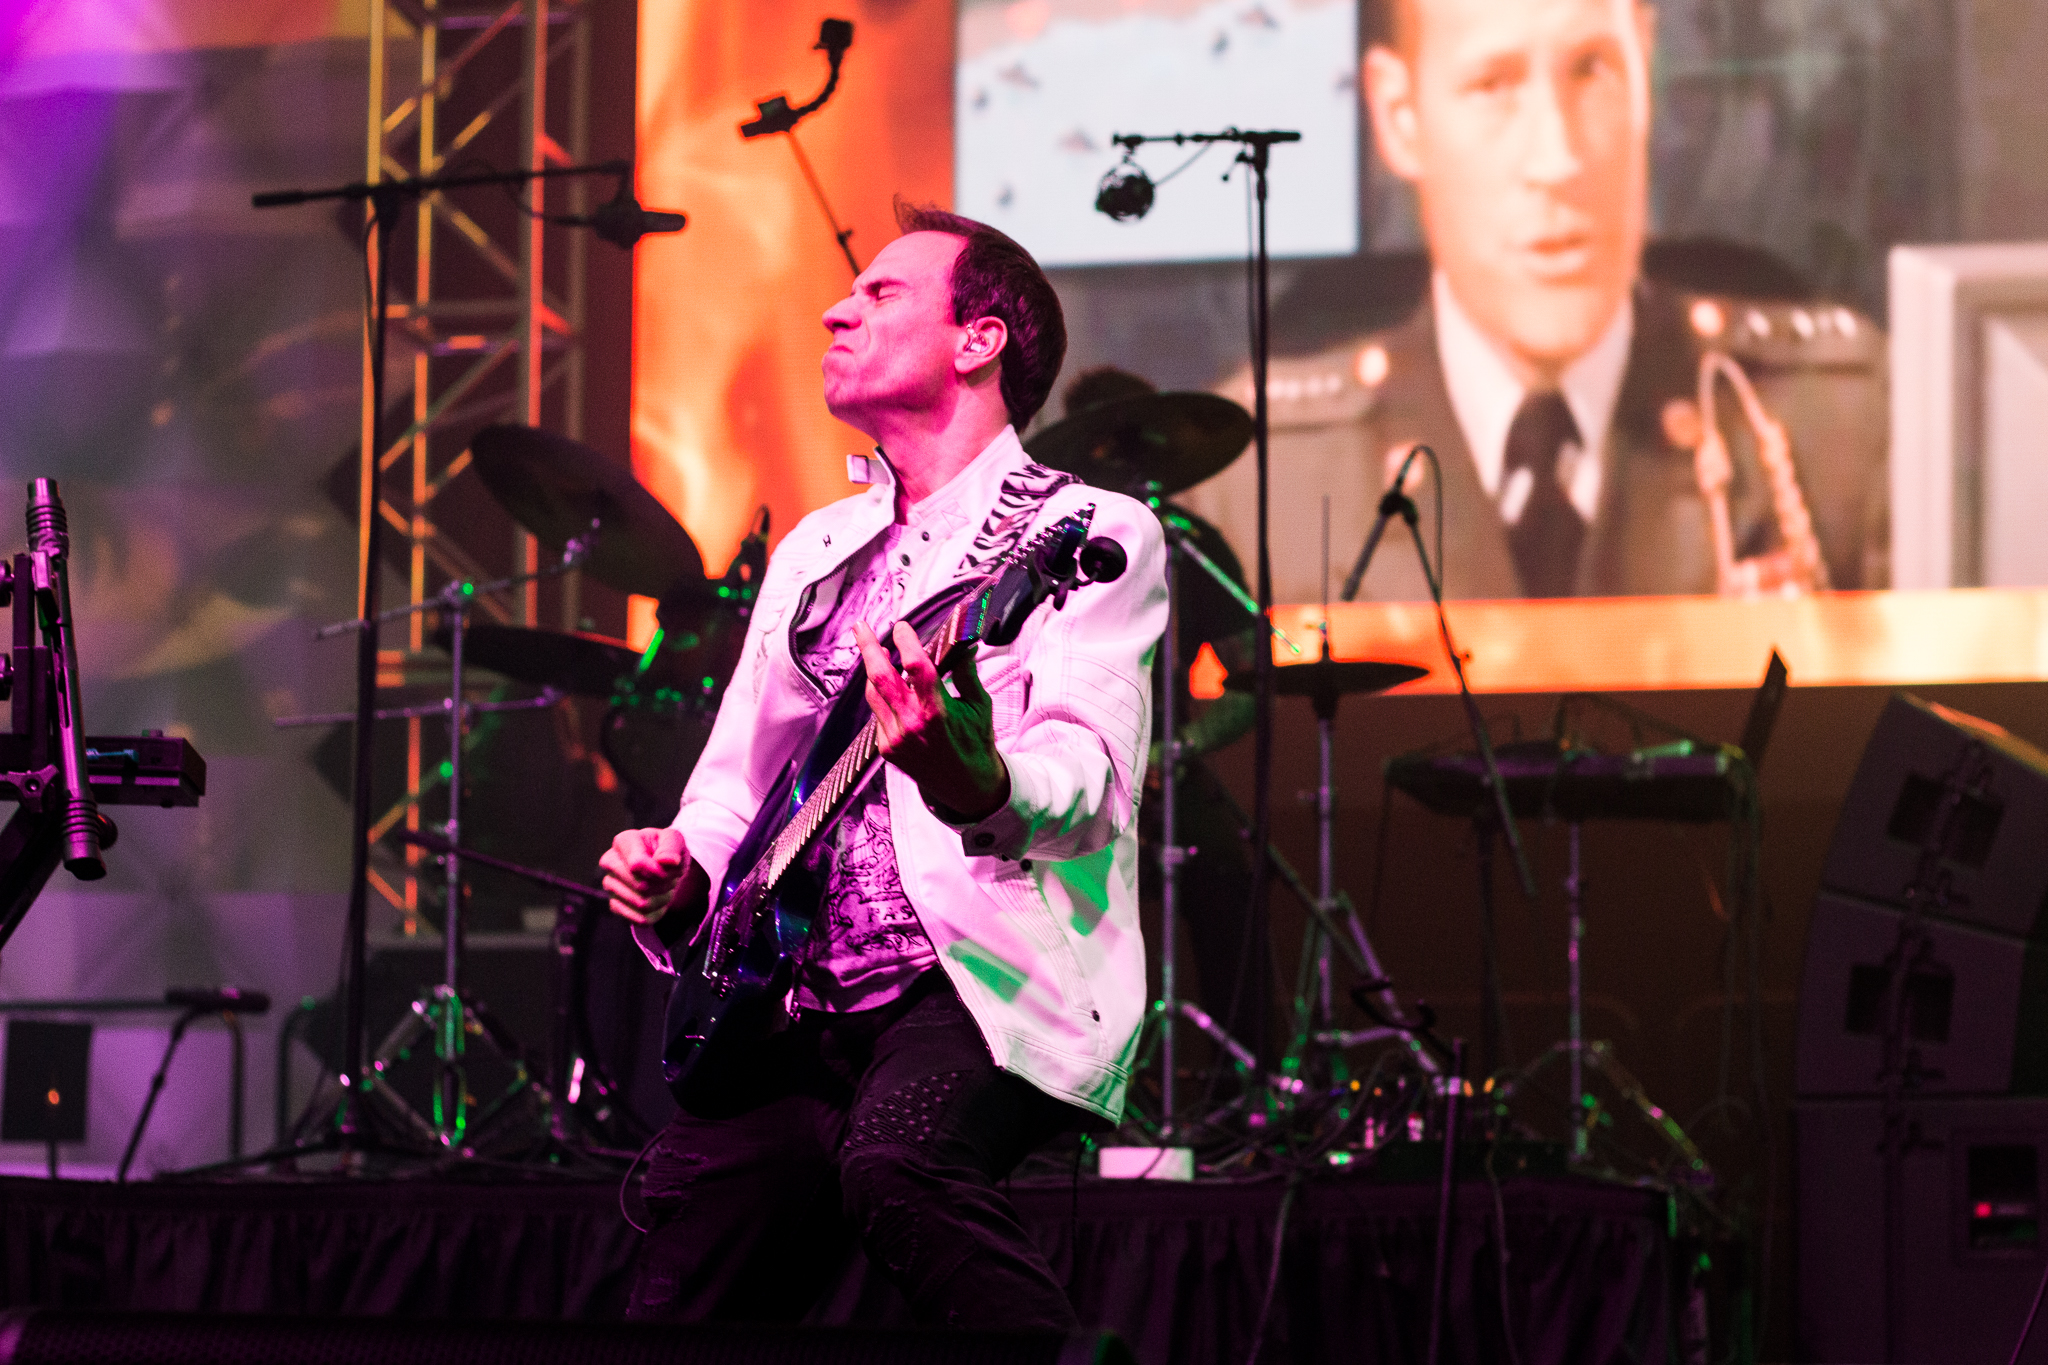 Performing at MAGFest 2019